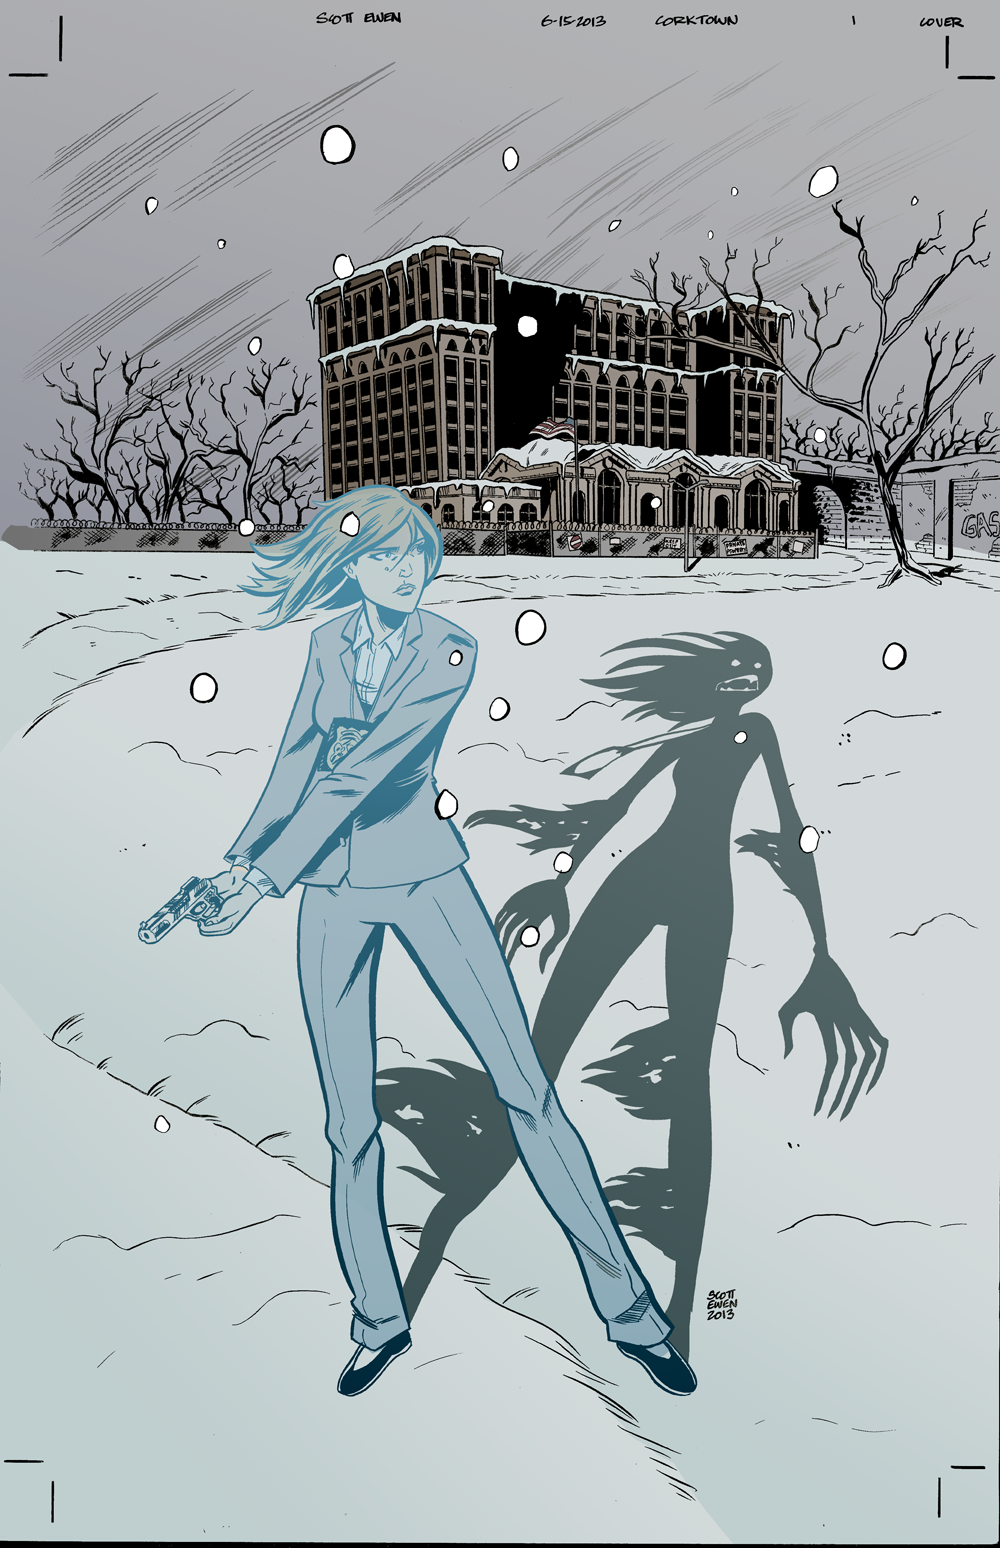 corktown_cover_mock_up_by_scottewen-d6fwcaq.png